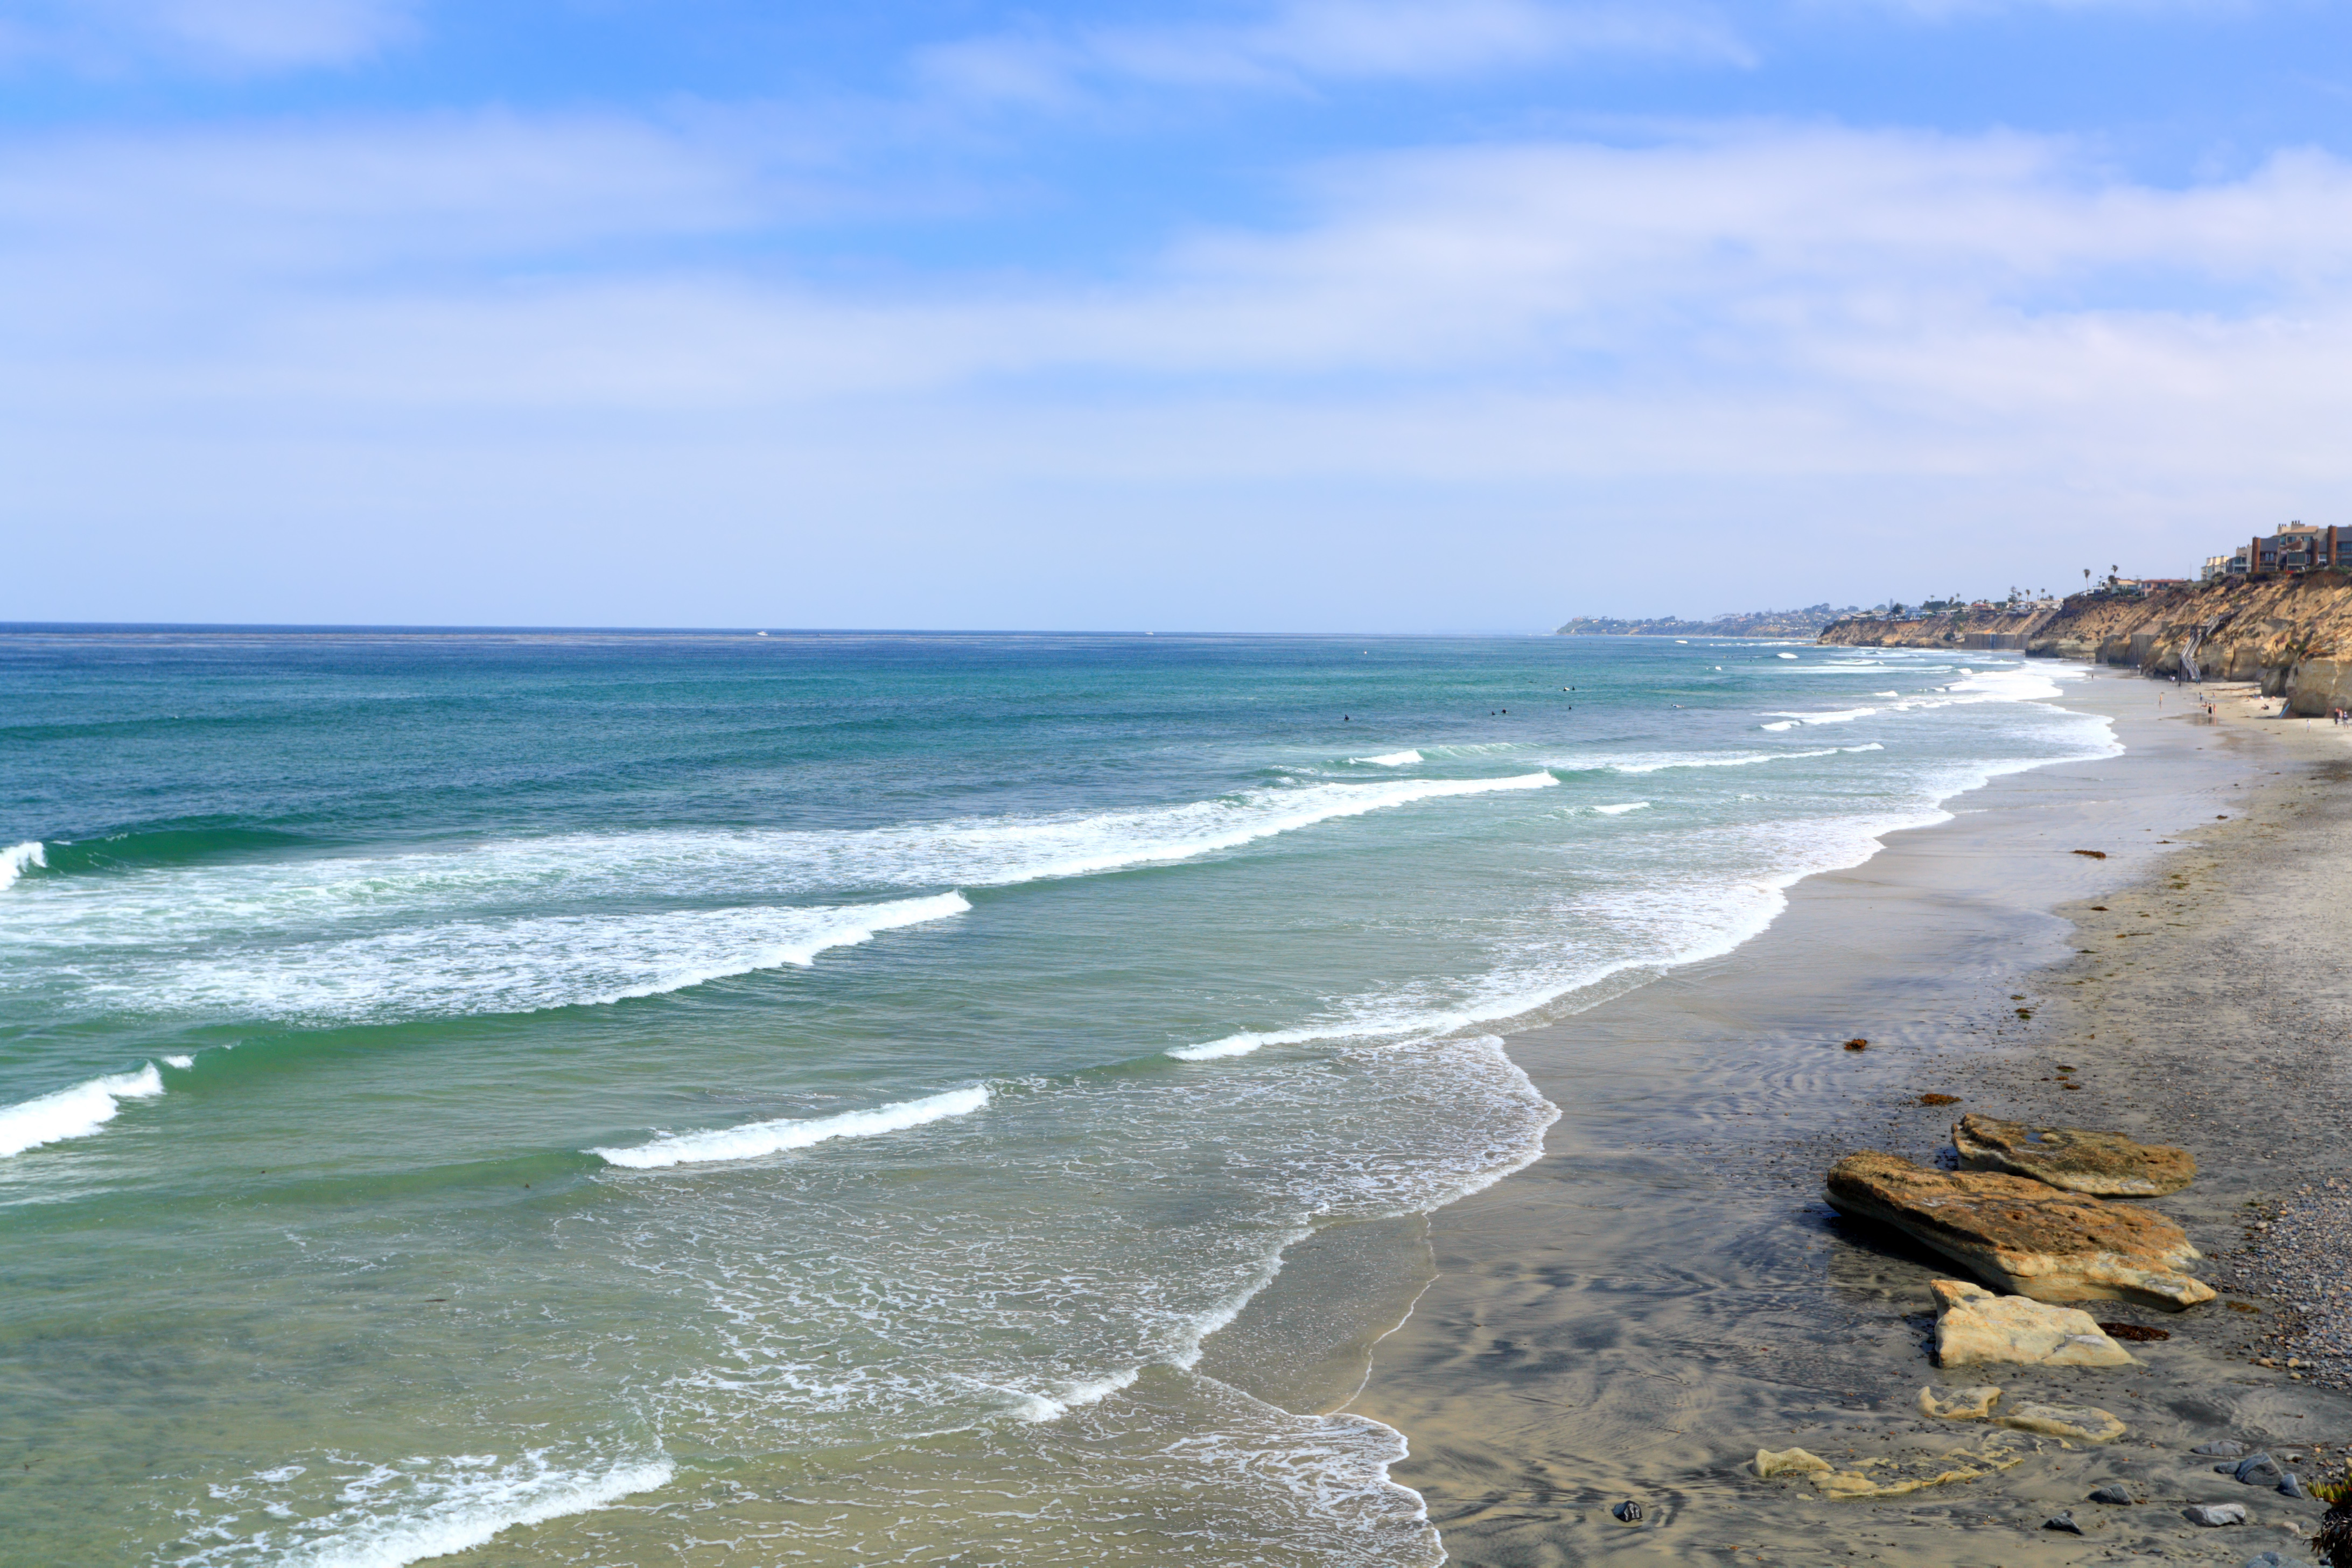 24 hours in solana beach, ca